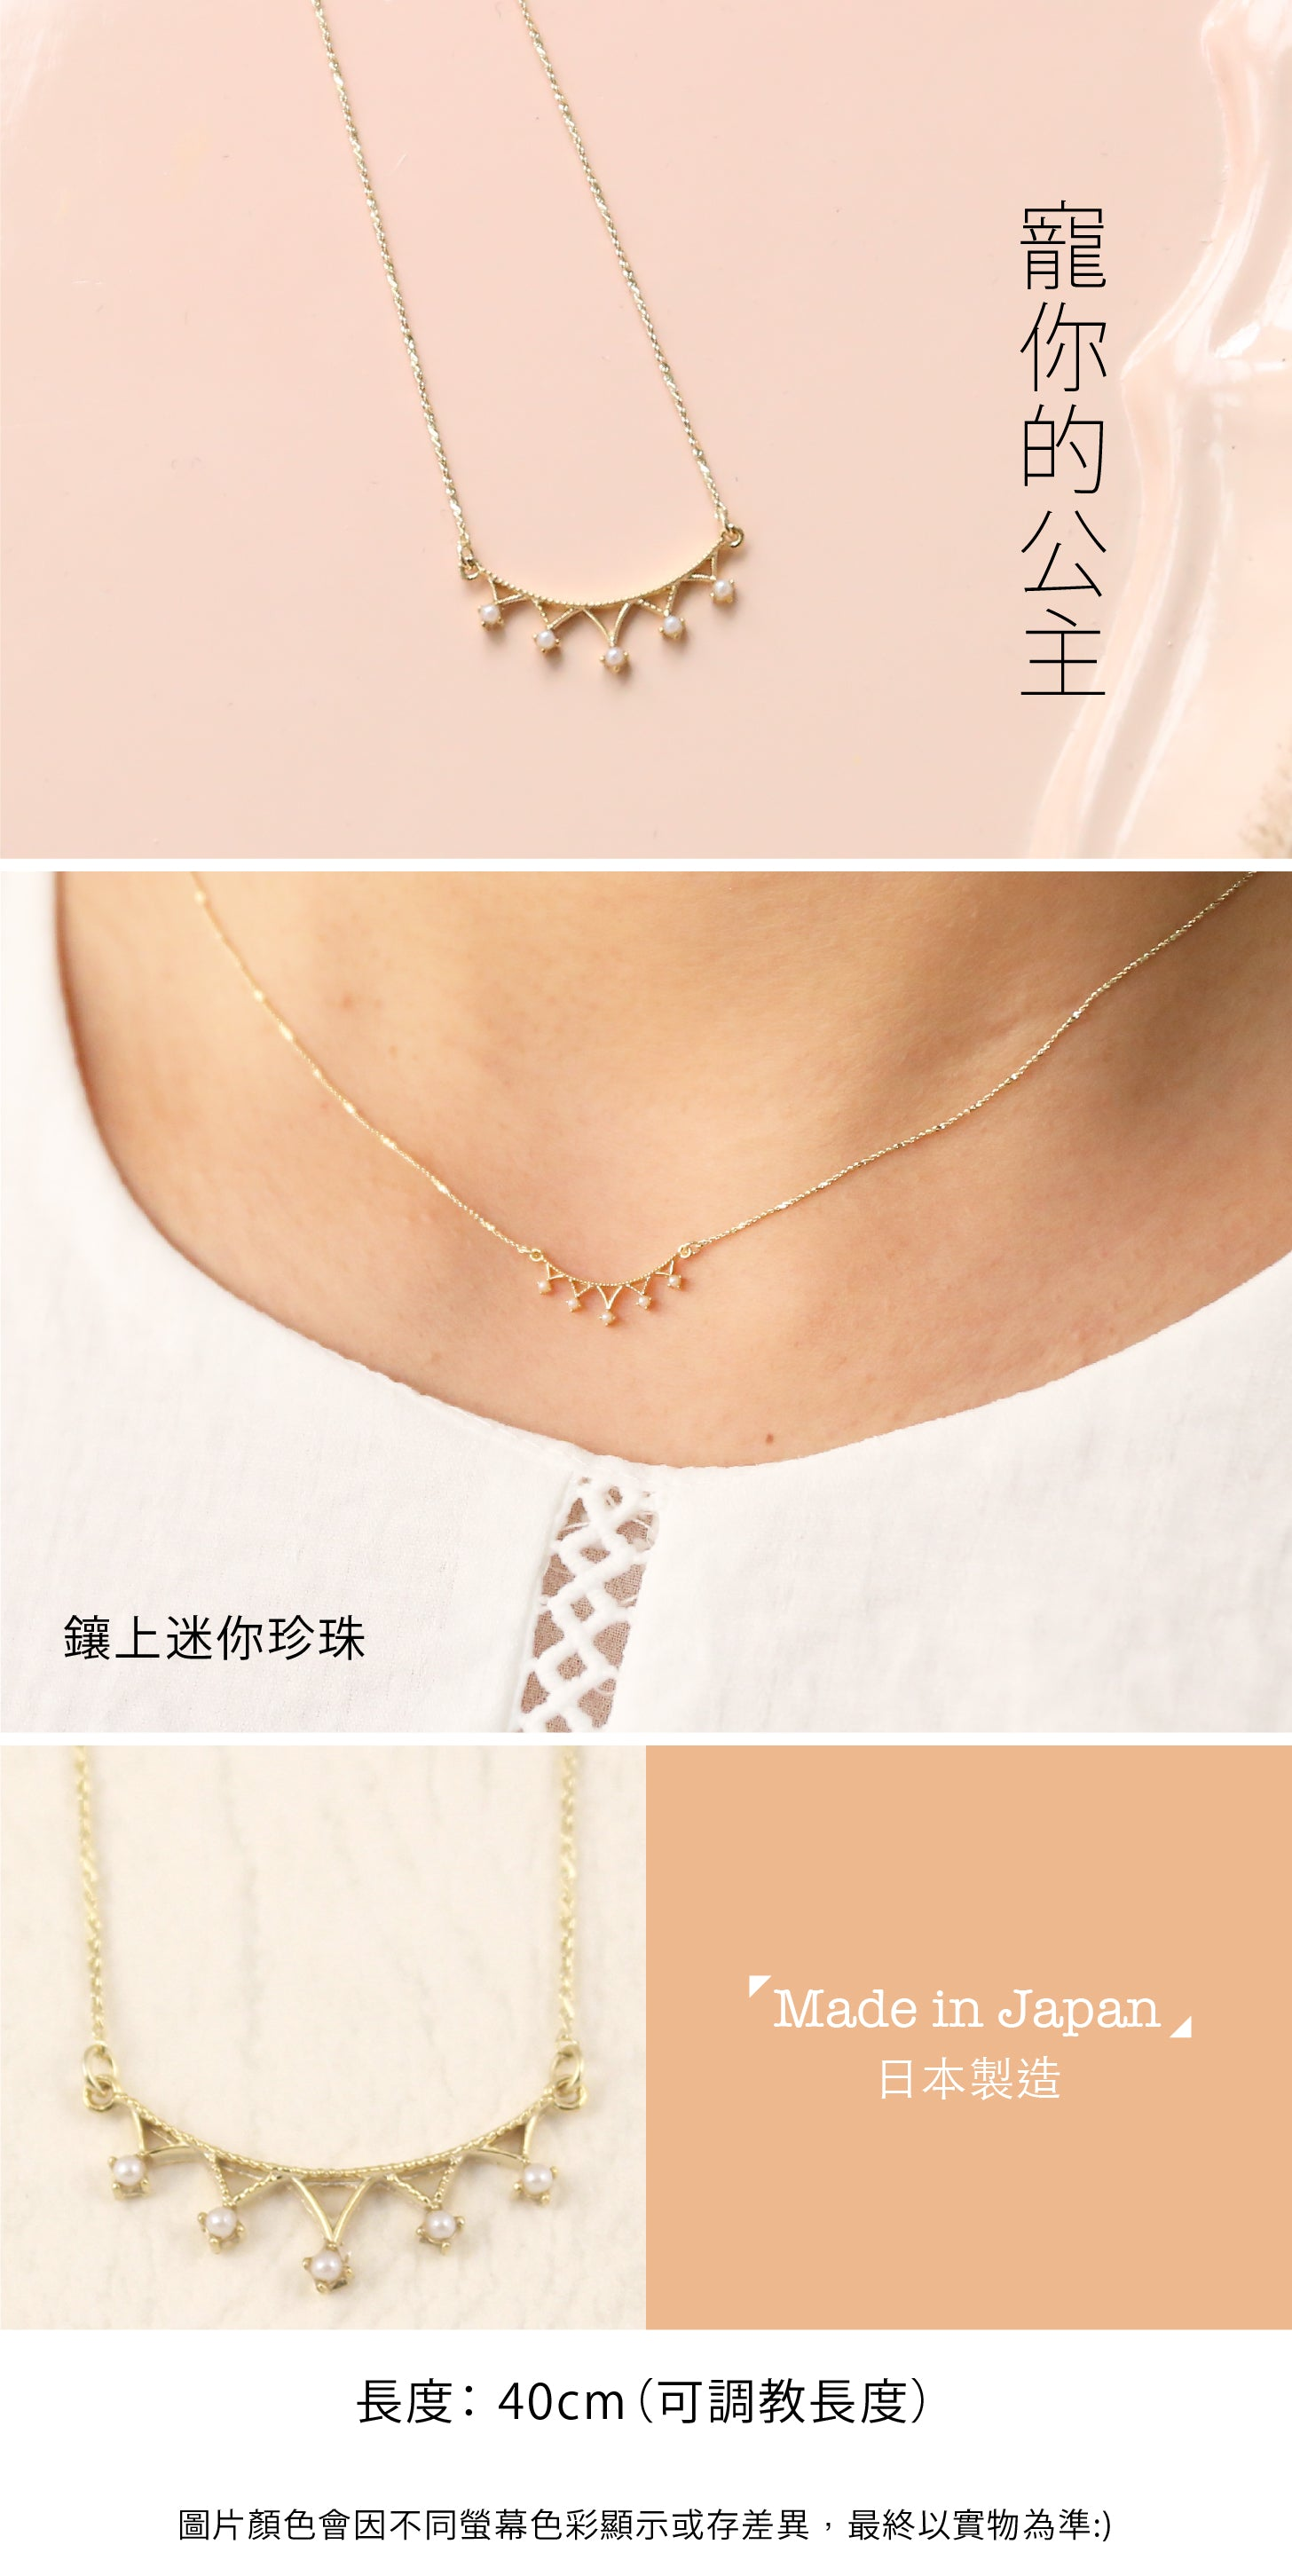 Japanese handmade jewelry - crown necklace